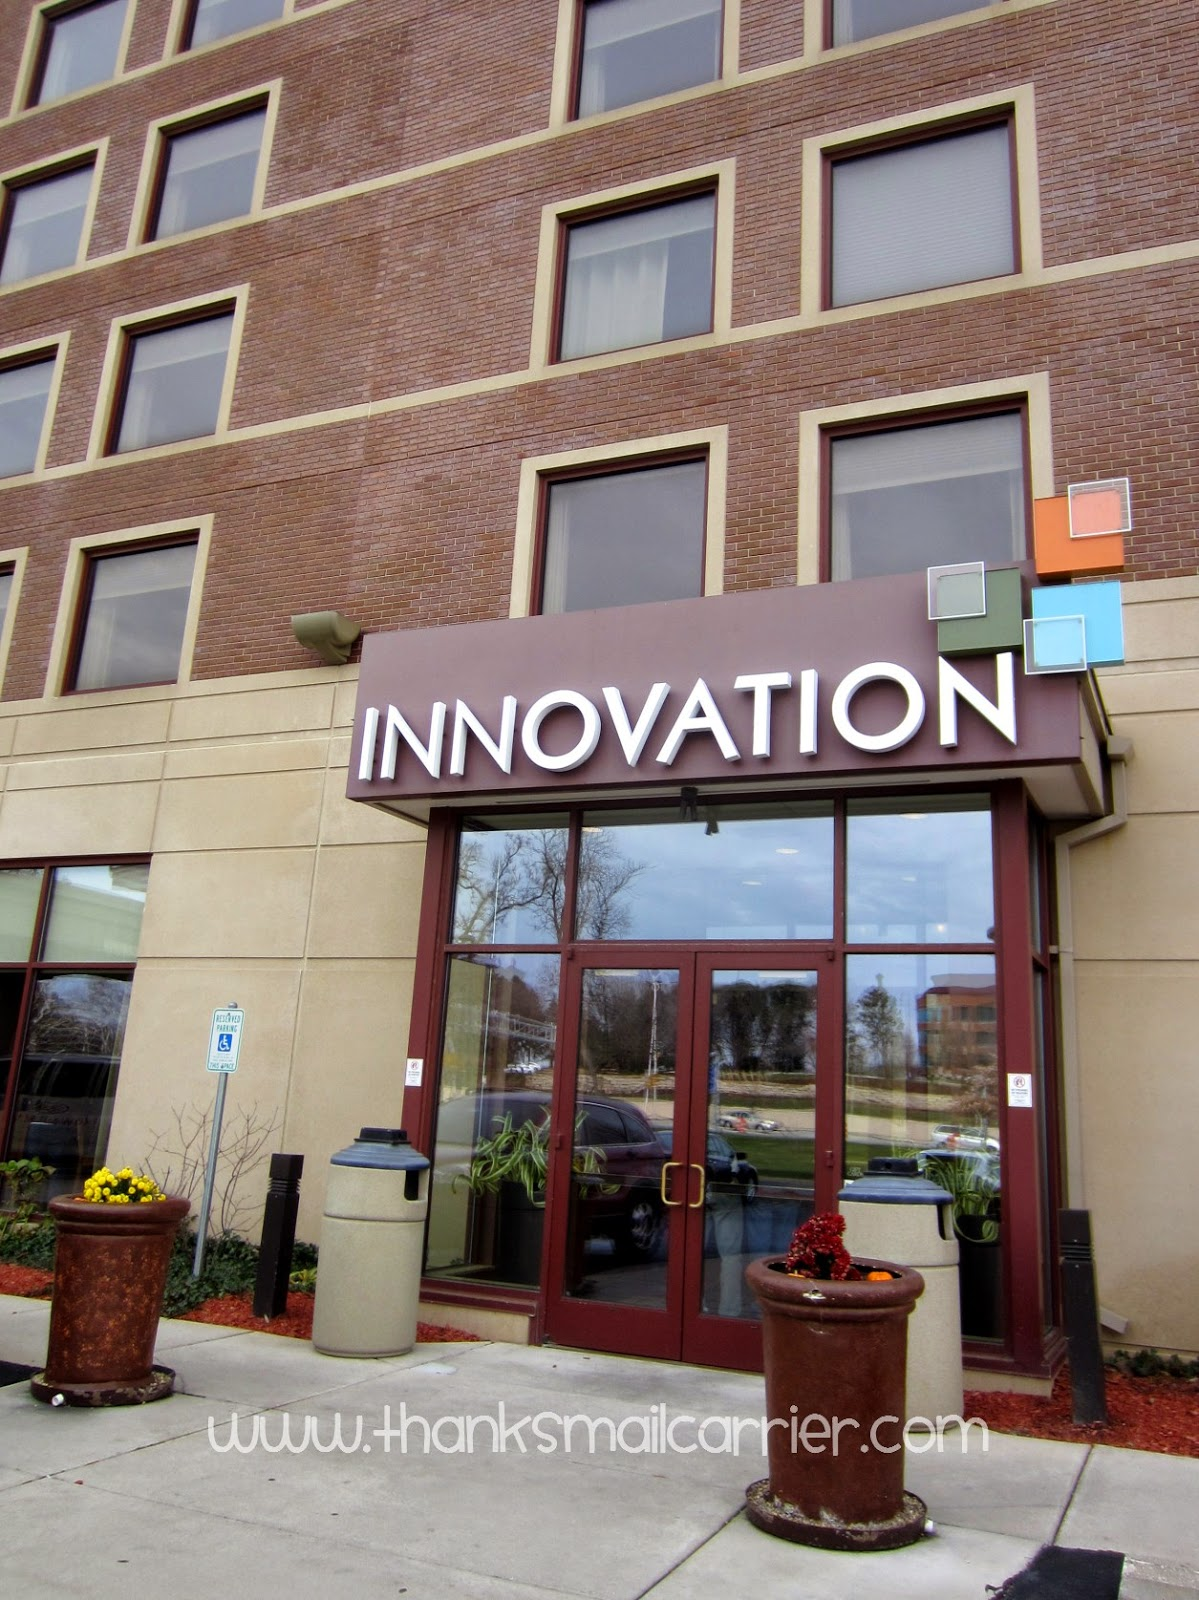 Innovation restaurant